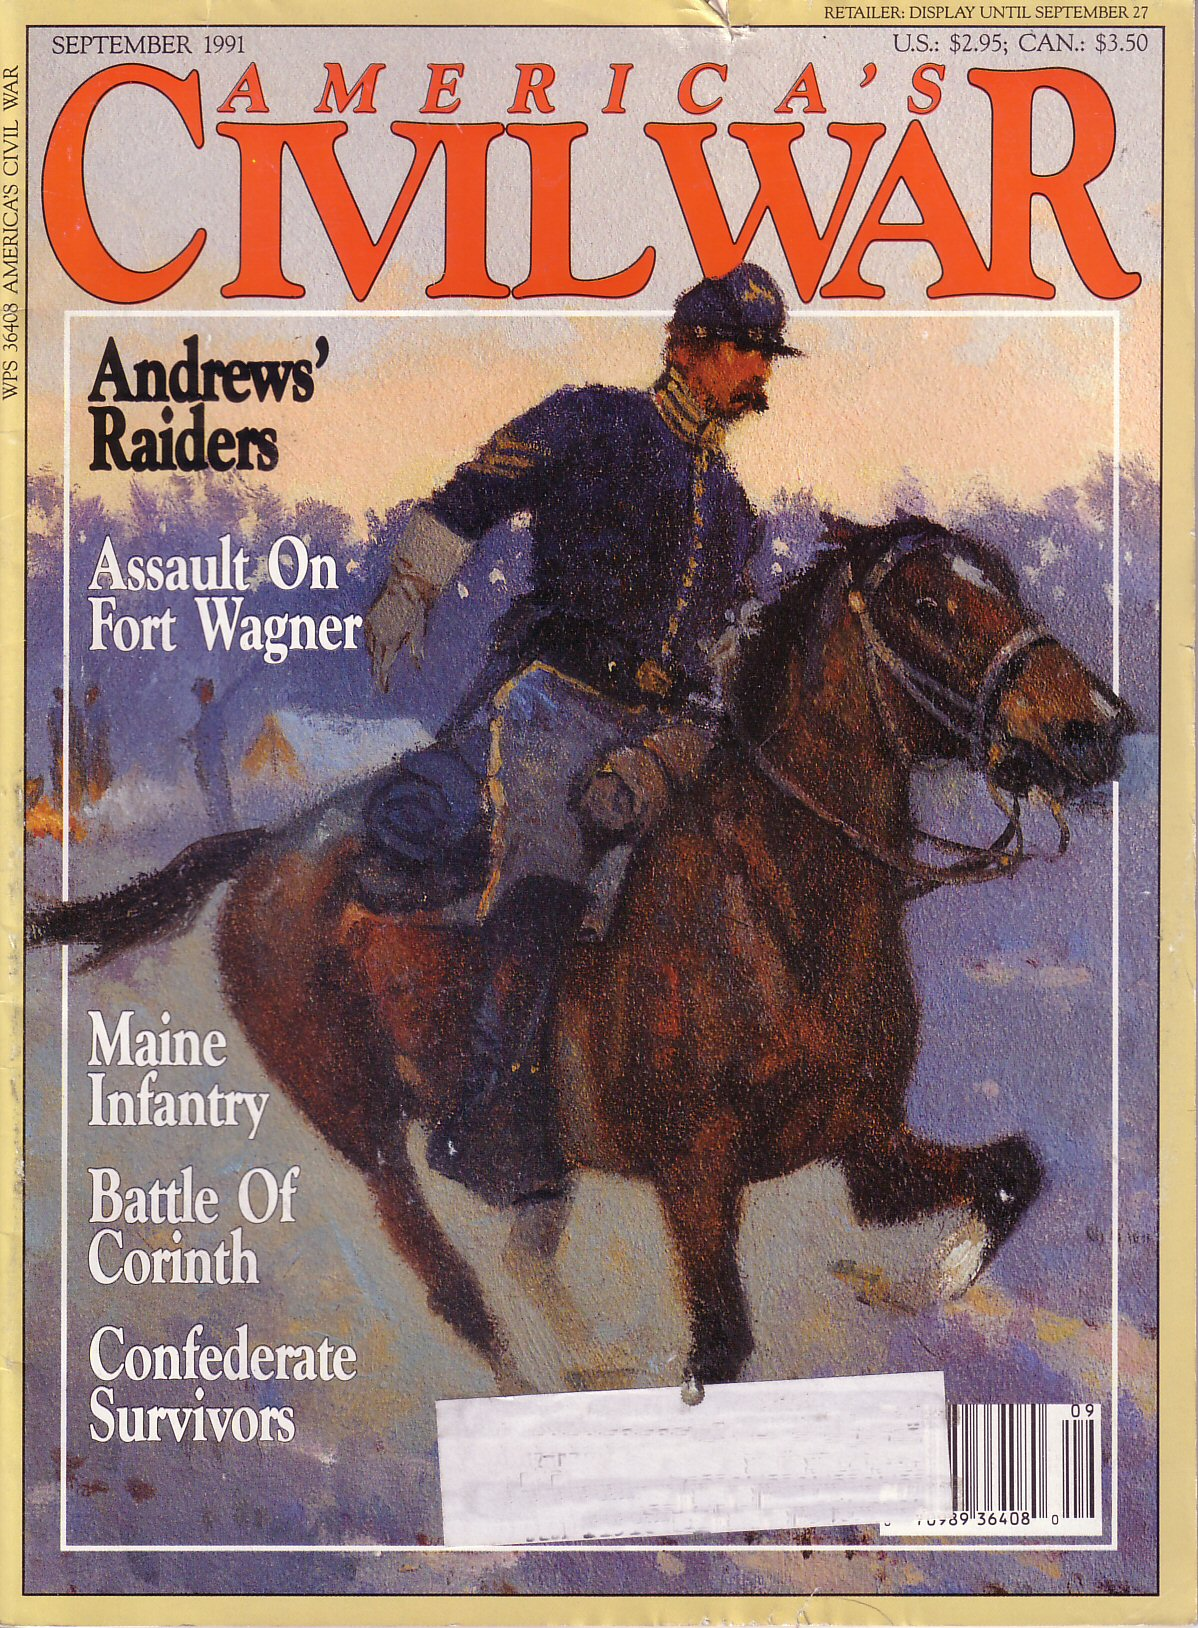 Americas Civil War, Volume 4, Number 3 (September 1991)